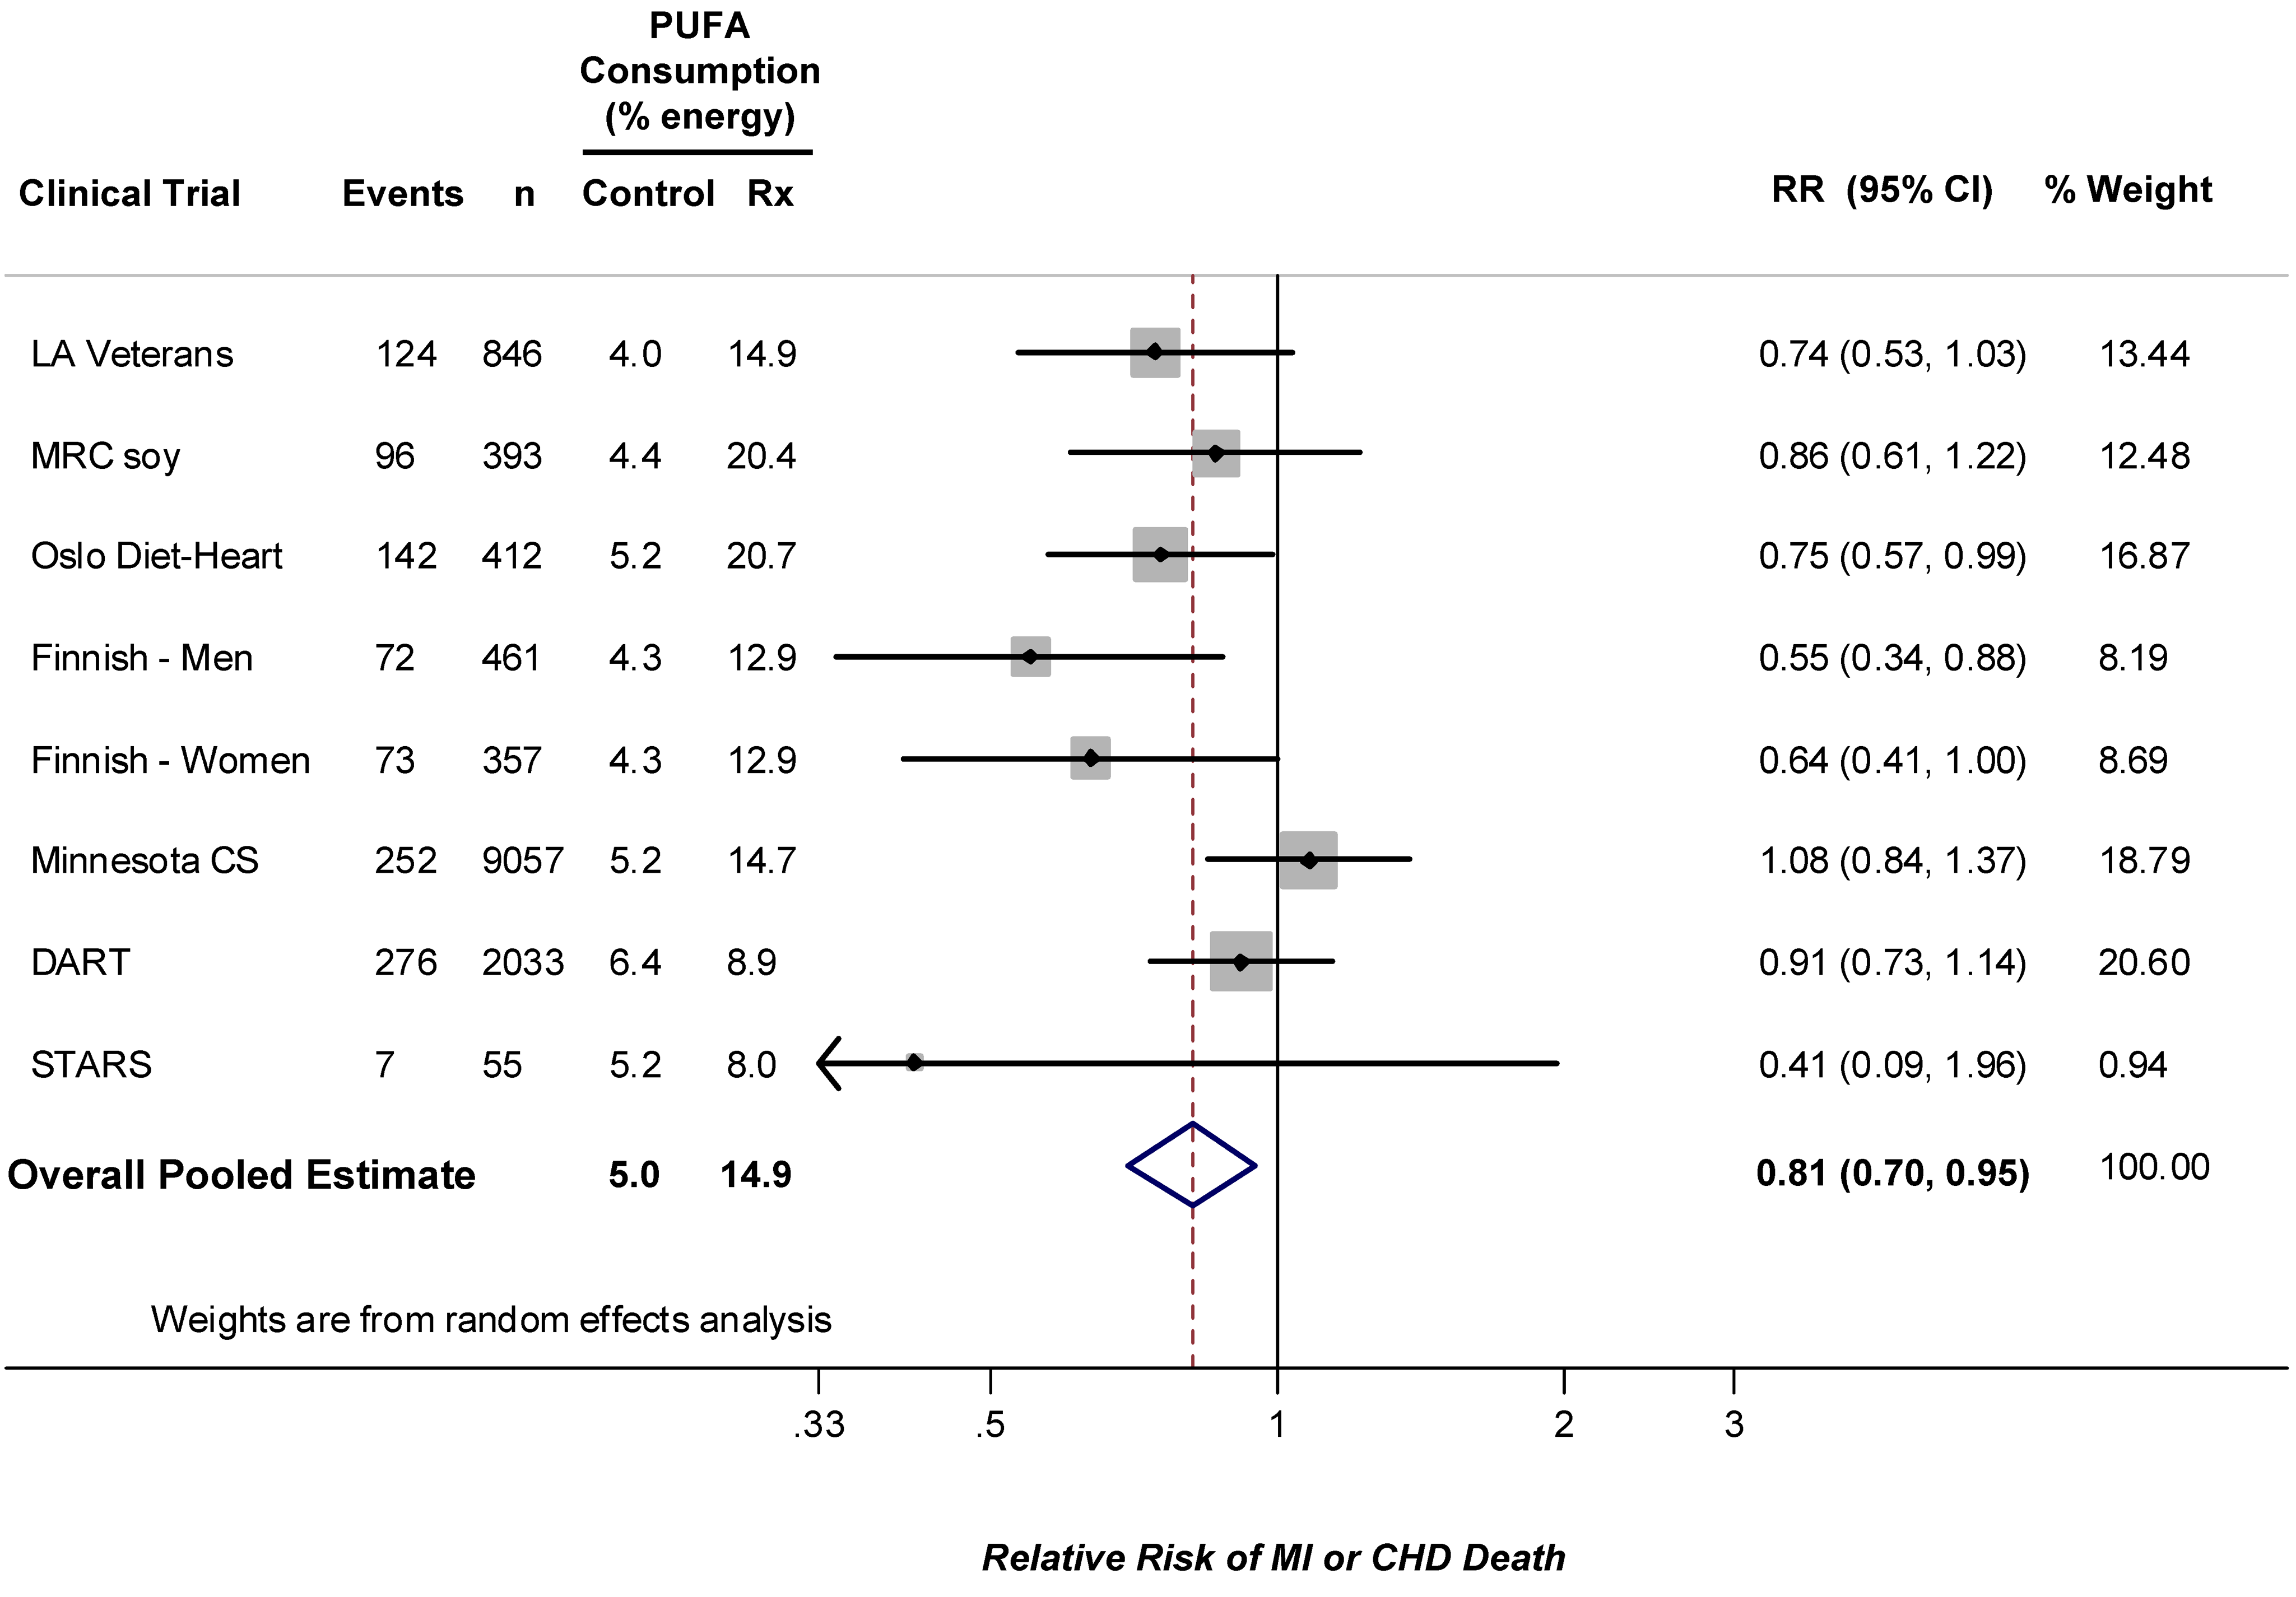 Meta-analysis of RCTs evaluating effects of increasing PUFA consumption in place of SFA and occurrence of CHD events.